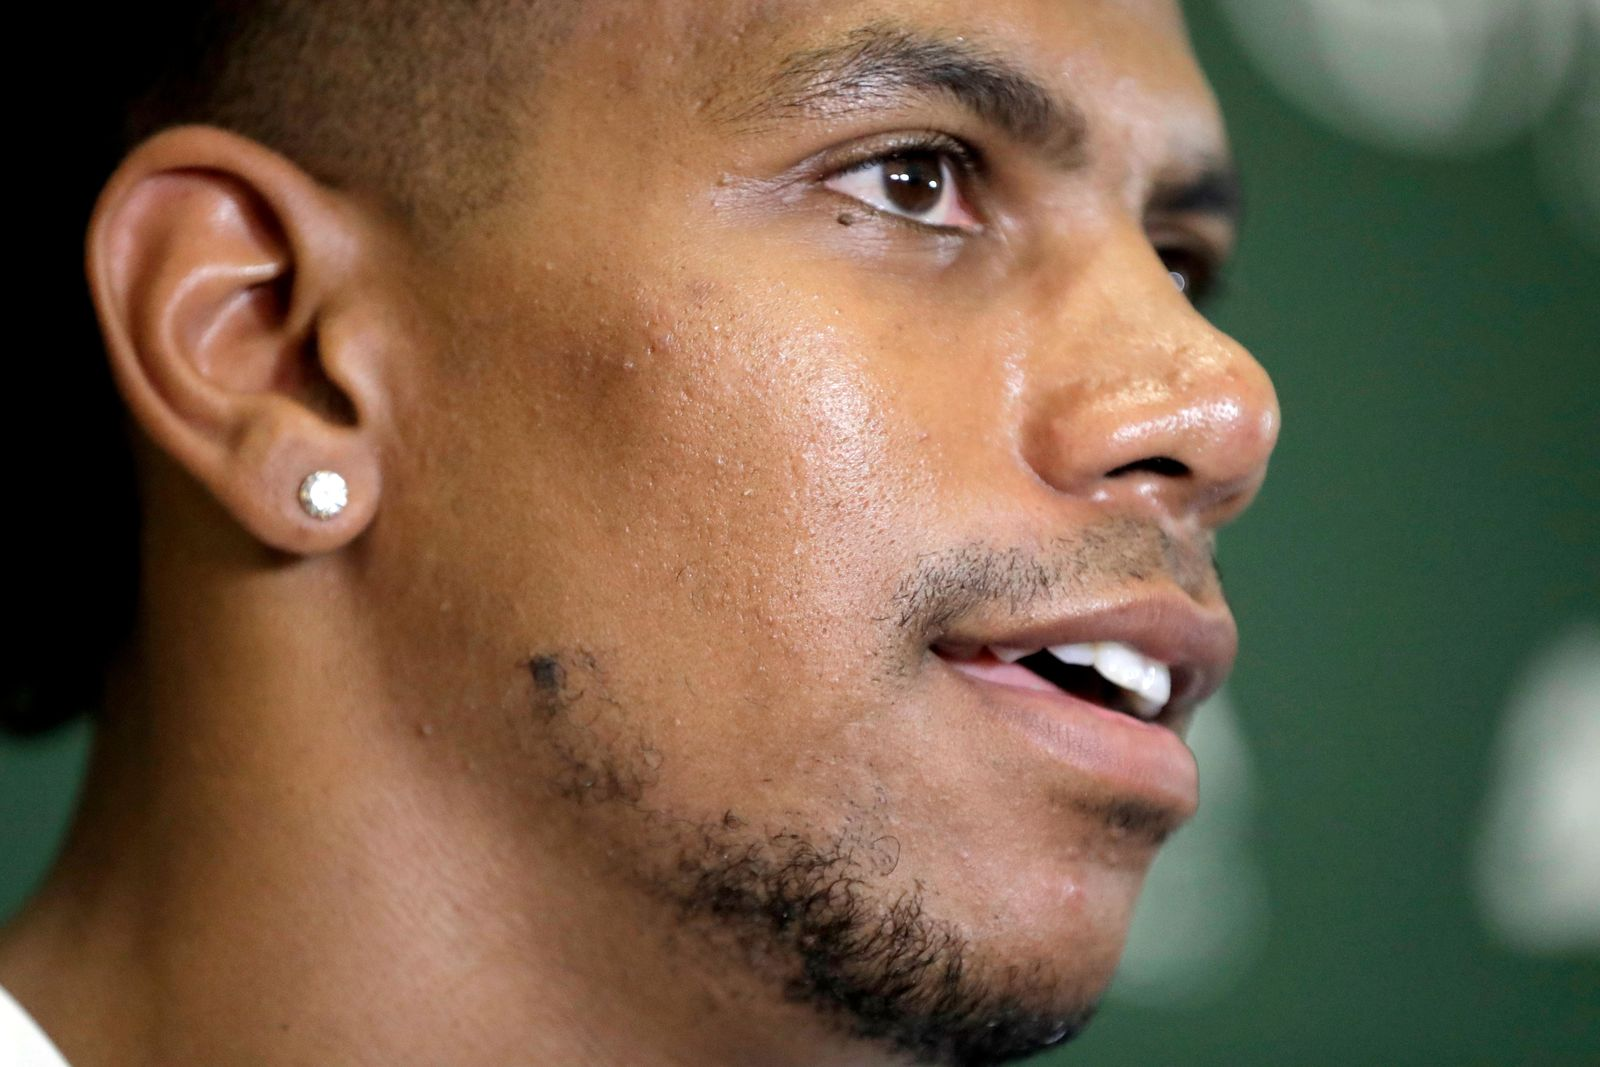 FILE - In this July 27, 2018, file photo, New York Jets wide receiver Terrelle Pryor talks to reporters during NFL football training camp in Florham Park, N.J. Allegheny County, Pa., District Attorney spokesman Mike Manko confirmed Saturday, Nov. 30, 2019, that Pryor, a free agent, was the victim of a stabbing, but said he had no other information, such as Pryor's condition or where and when the stabbing occurred.  (AP Photo/Julio Cortez, File)